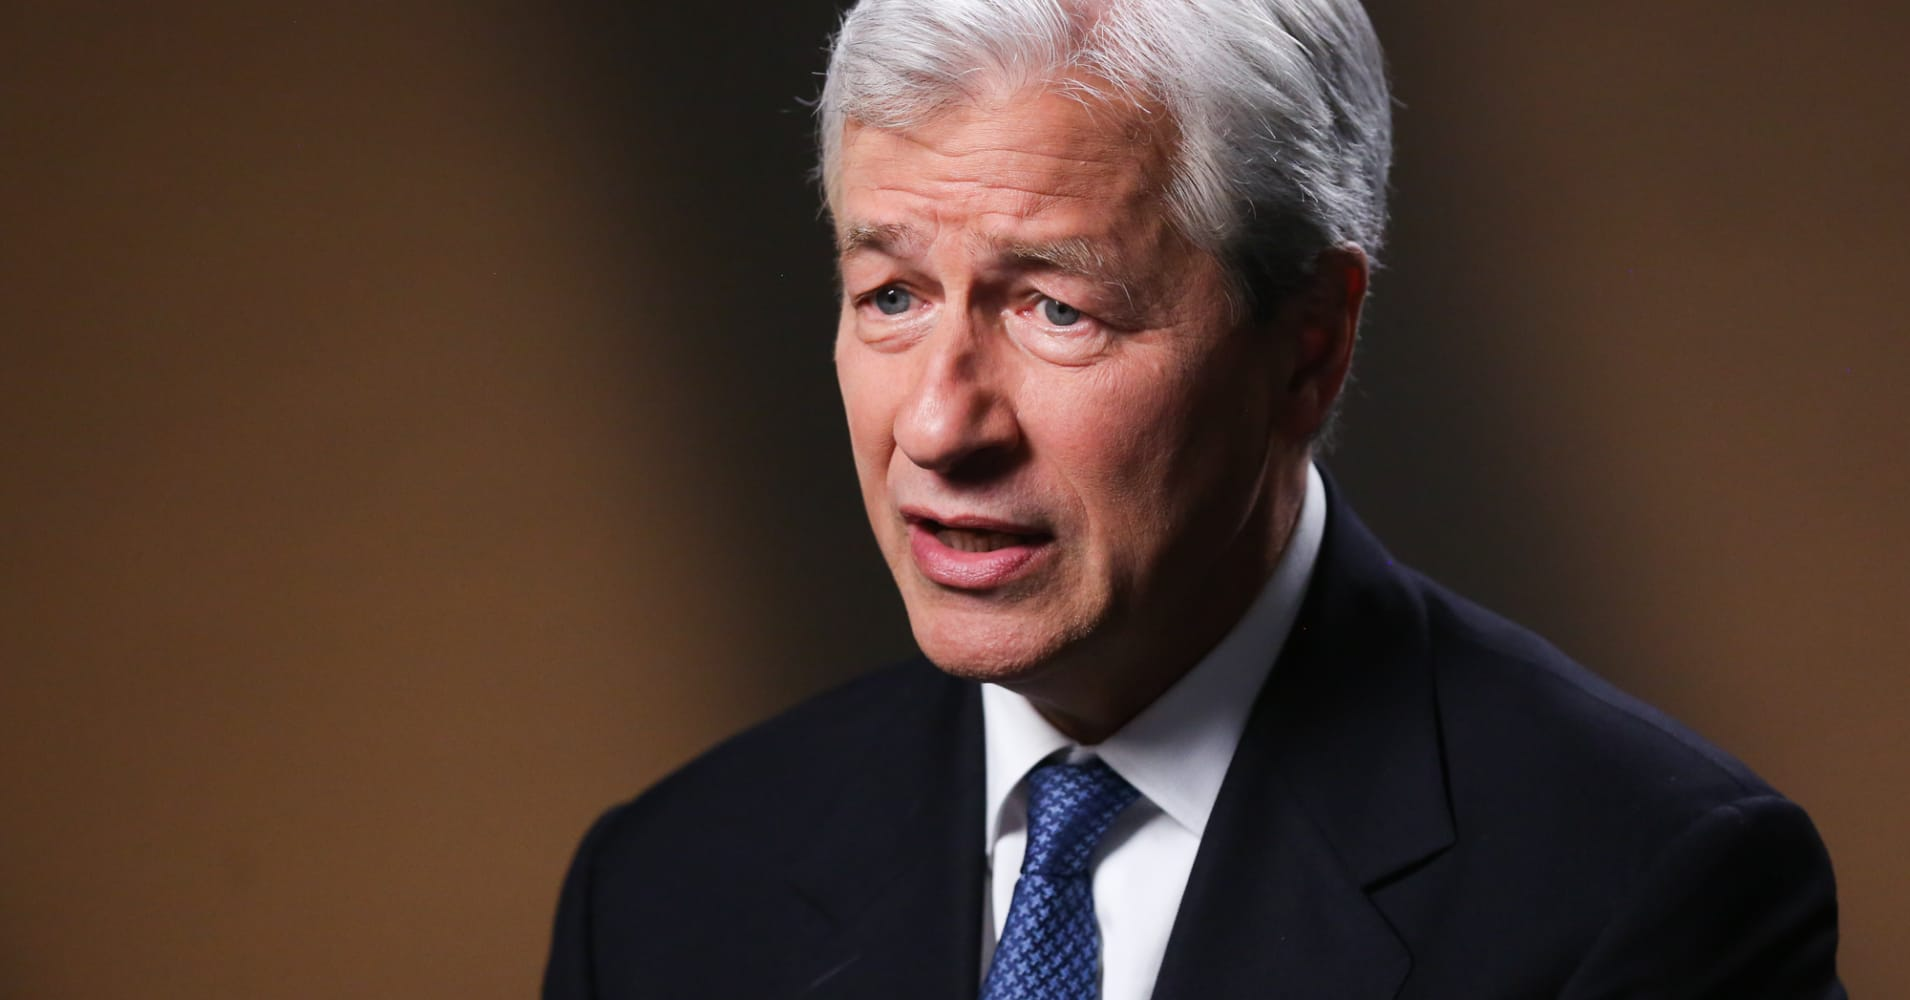 Jamie Dimon sounds warning about inflation, rates: 'Geopolitical issues bursting all over the place'